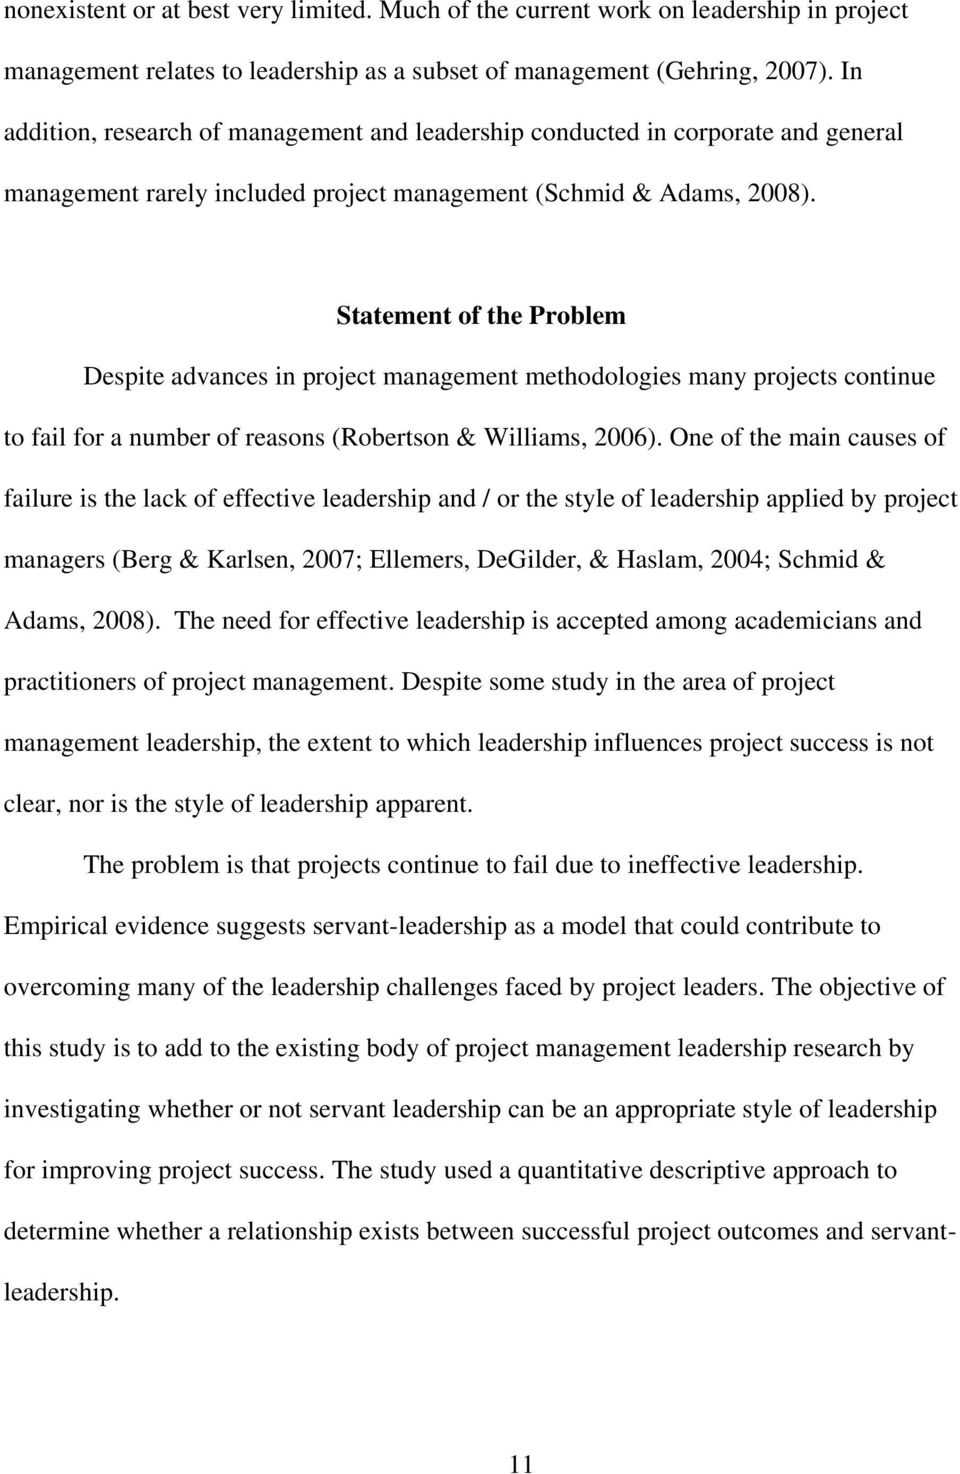 Statement of the Problem Despite advances in project management methodologies many projects continue to fail for a number of reasons (Robertson & Williams, 2006).